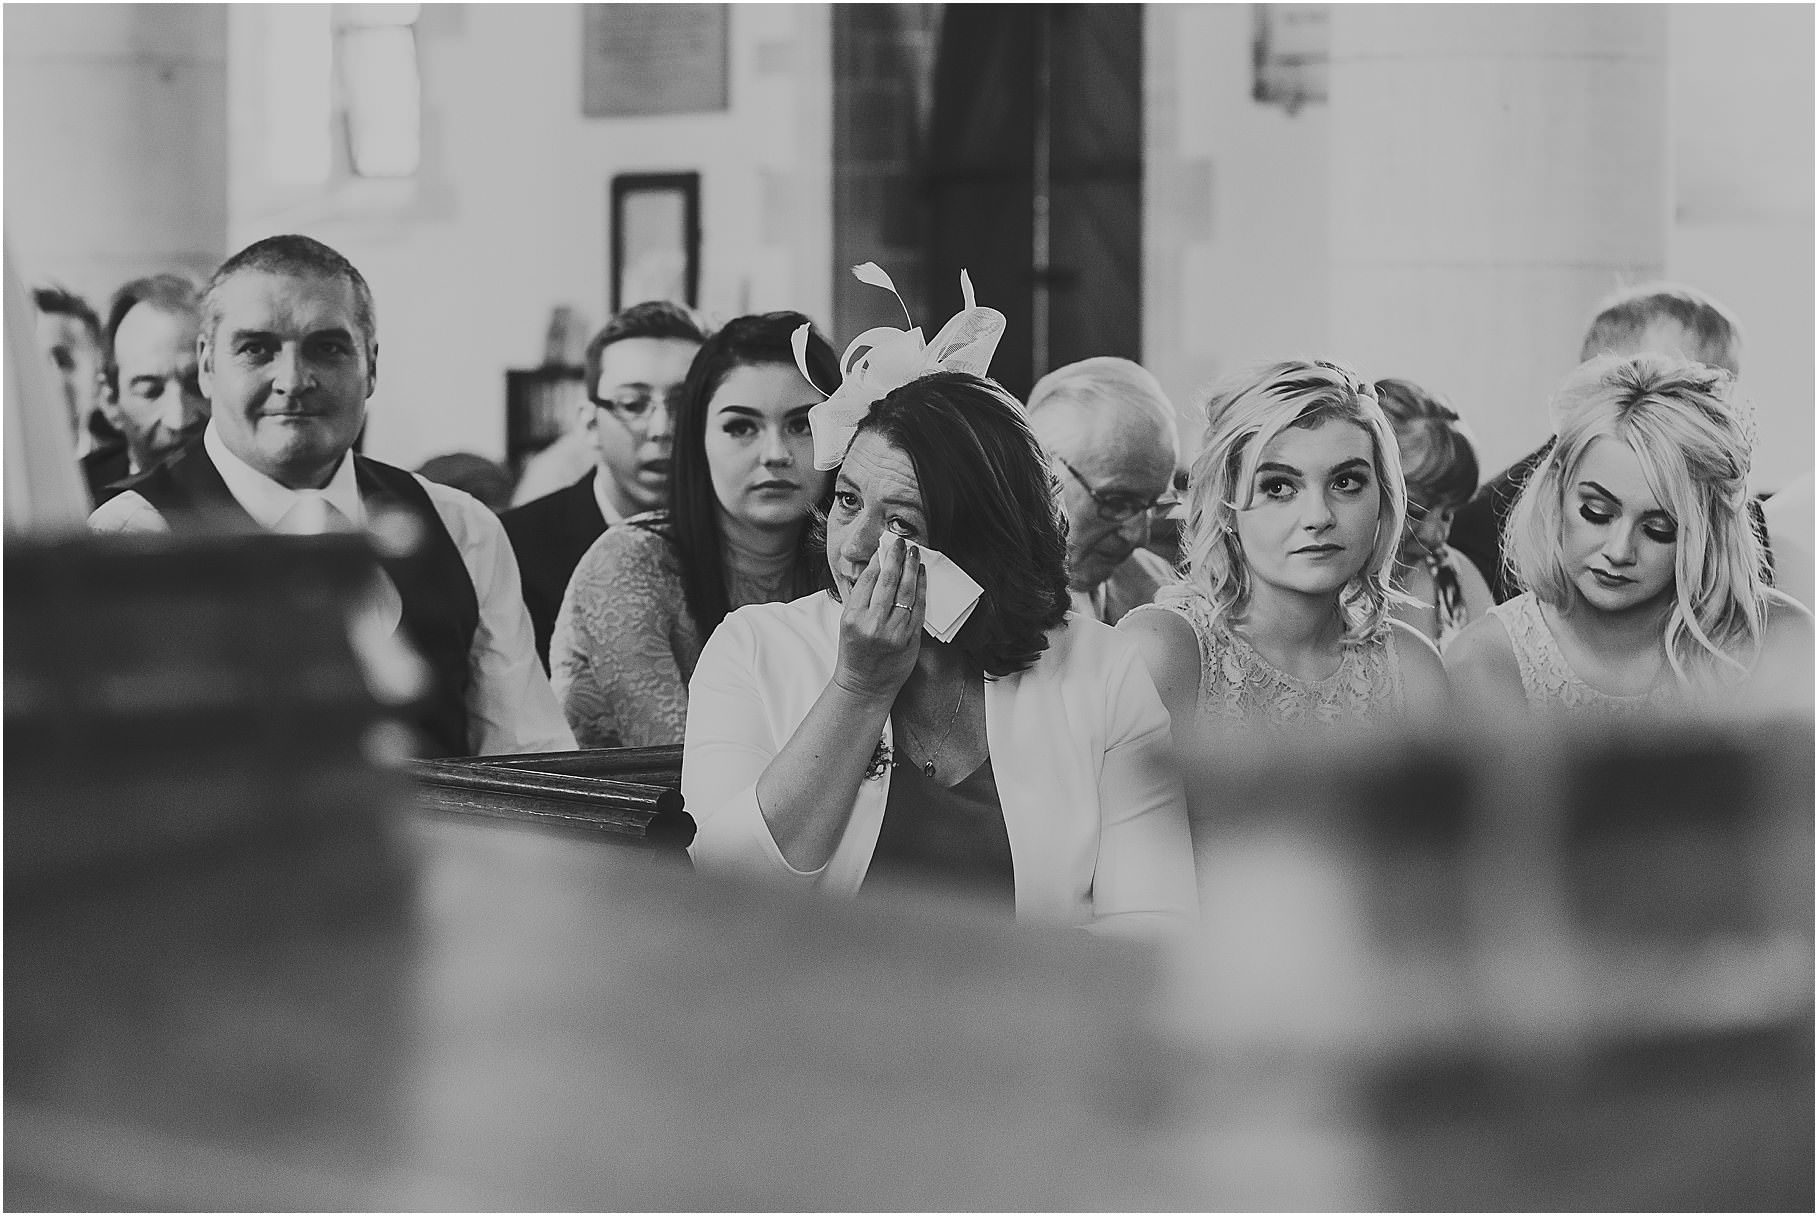 Rutland Weddings Exton Hall Exton Oakham Rutland Water Photographer 1054 - Mr and Mrs Barker // RUTLAND WEDDING